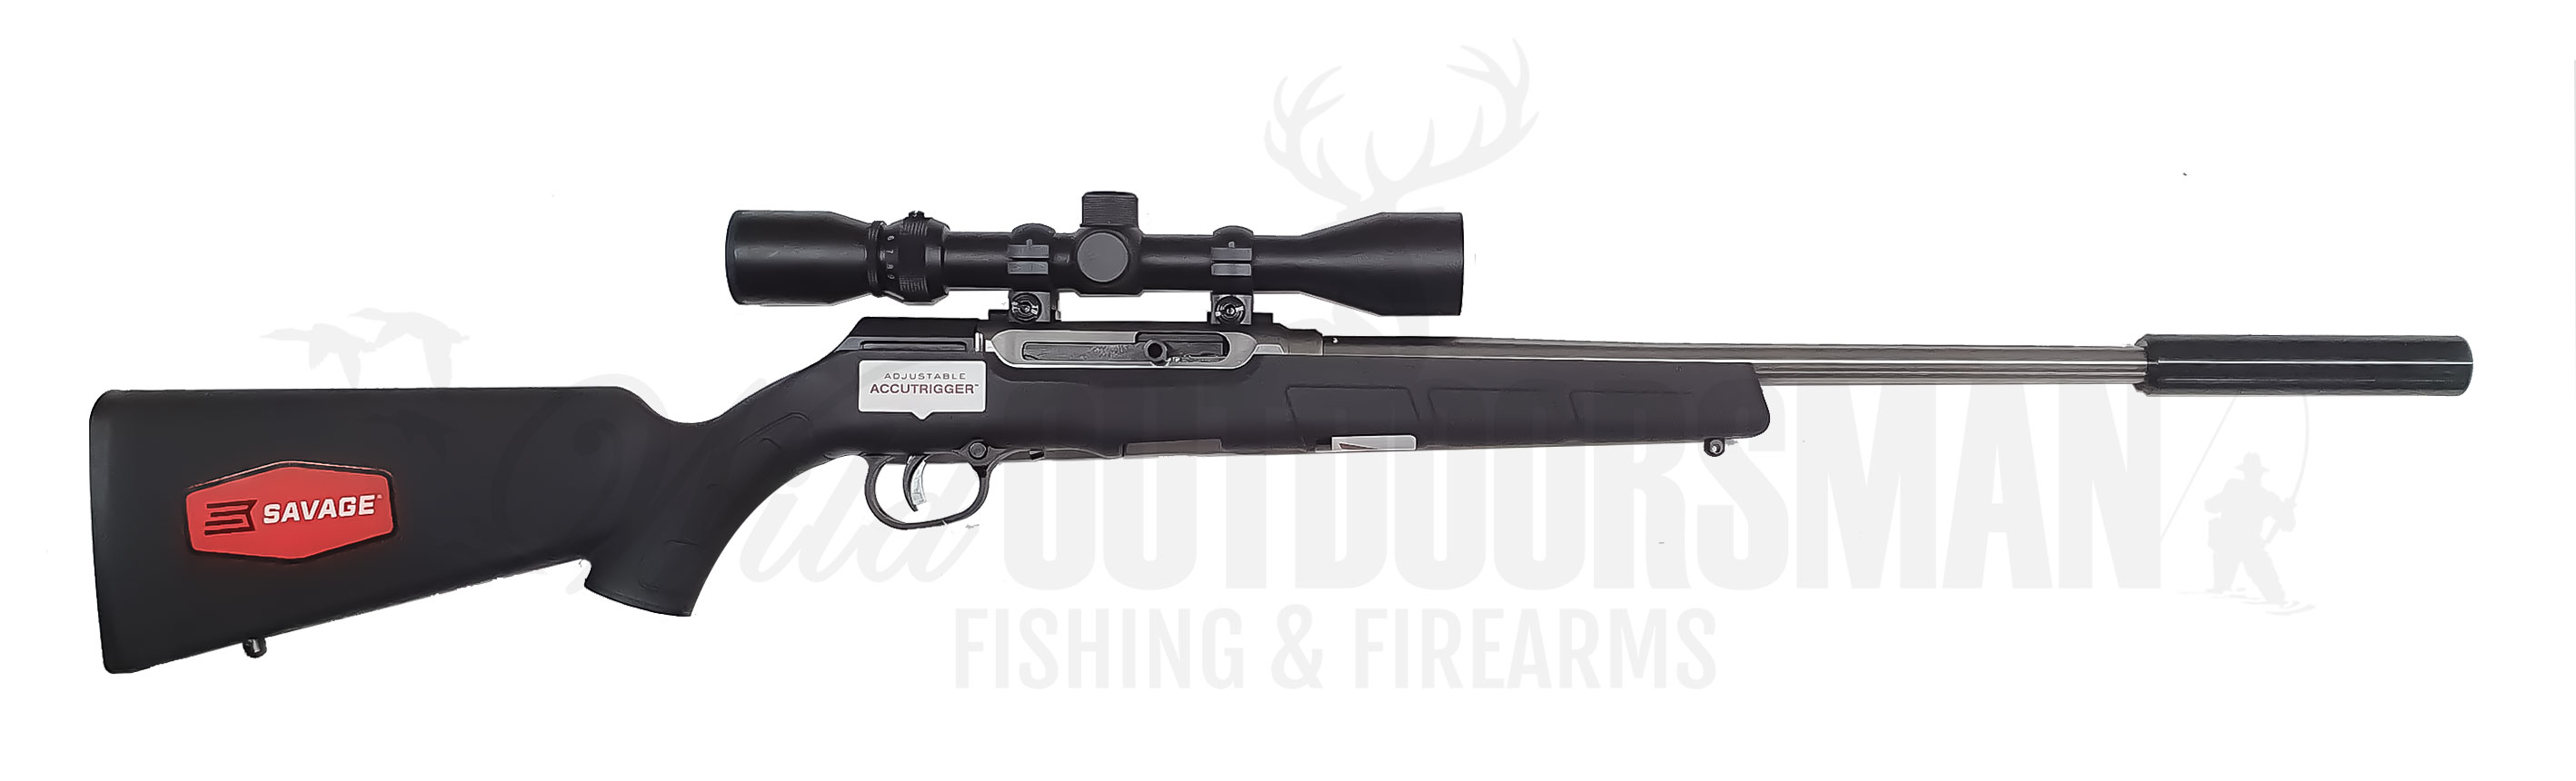 Savage A22 FSS XP-SR 22LR Stainless Synthetic Package